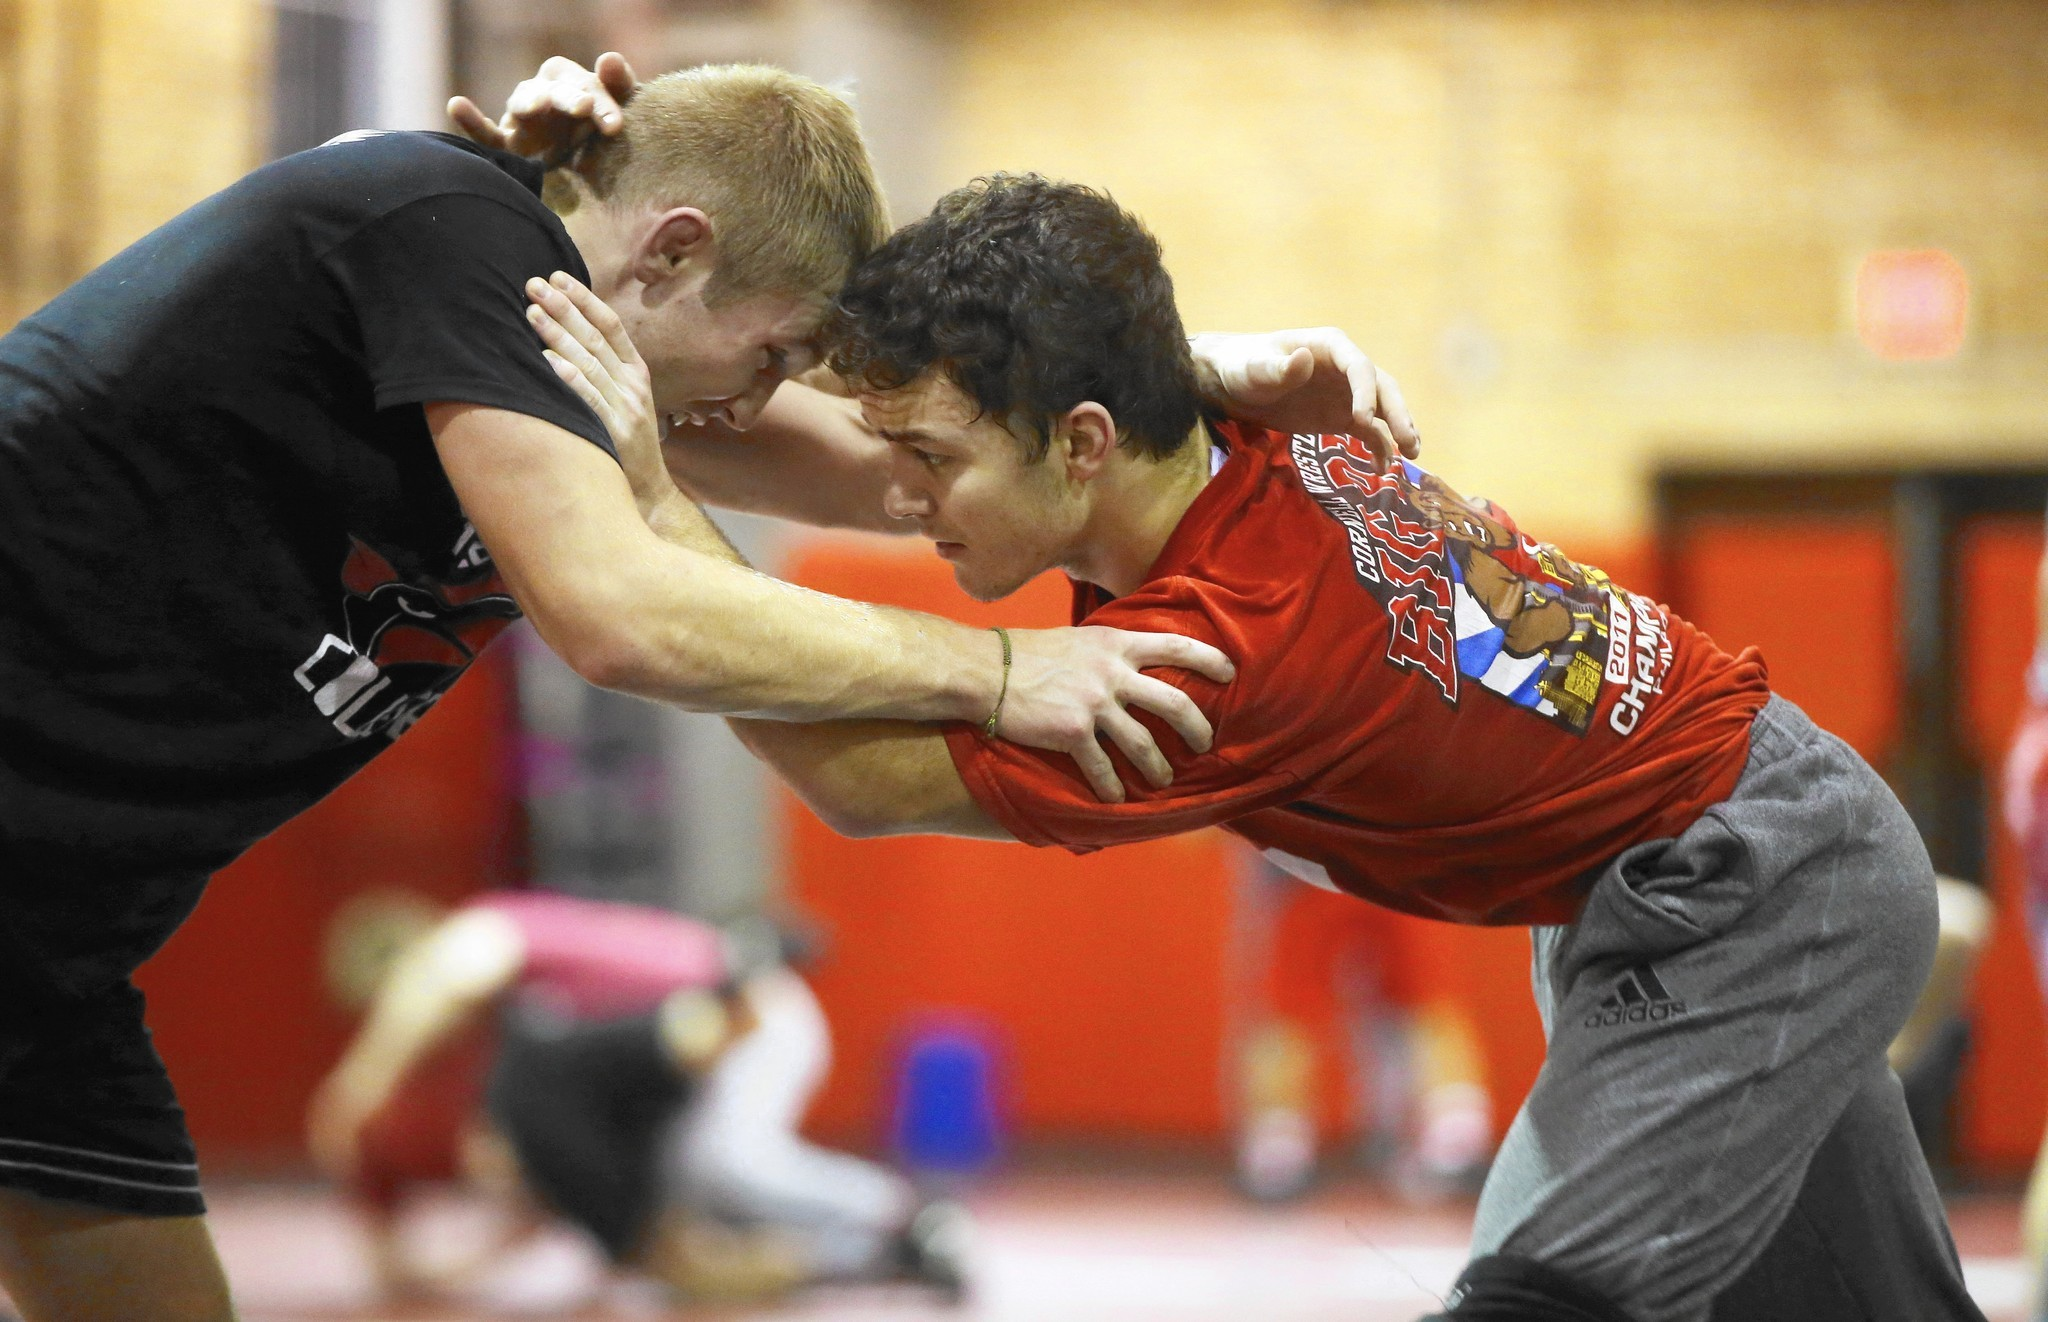 Studies shine harsh light on wrestling's concussion rate